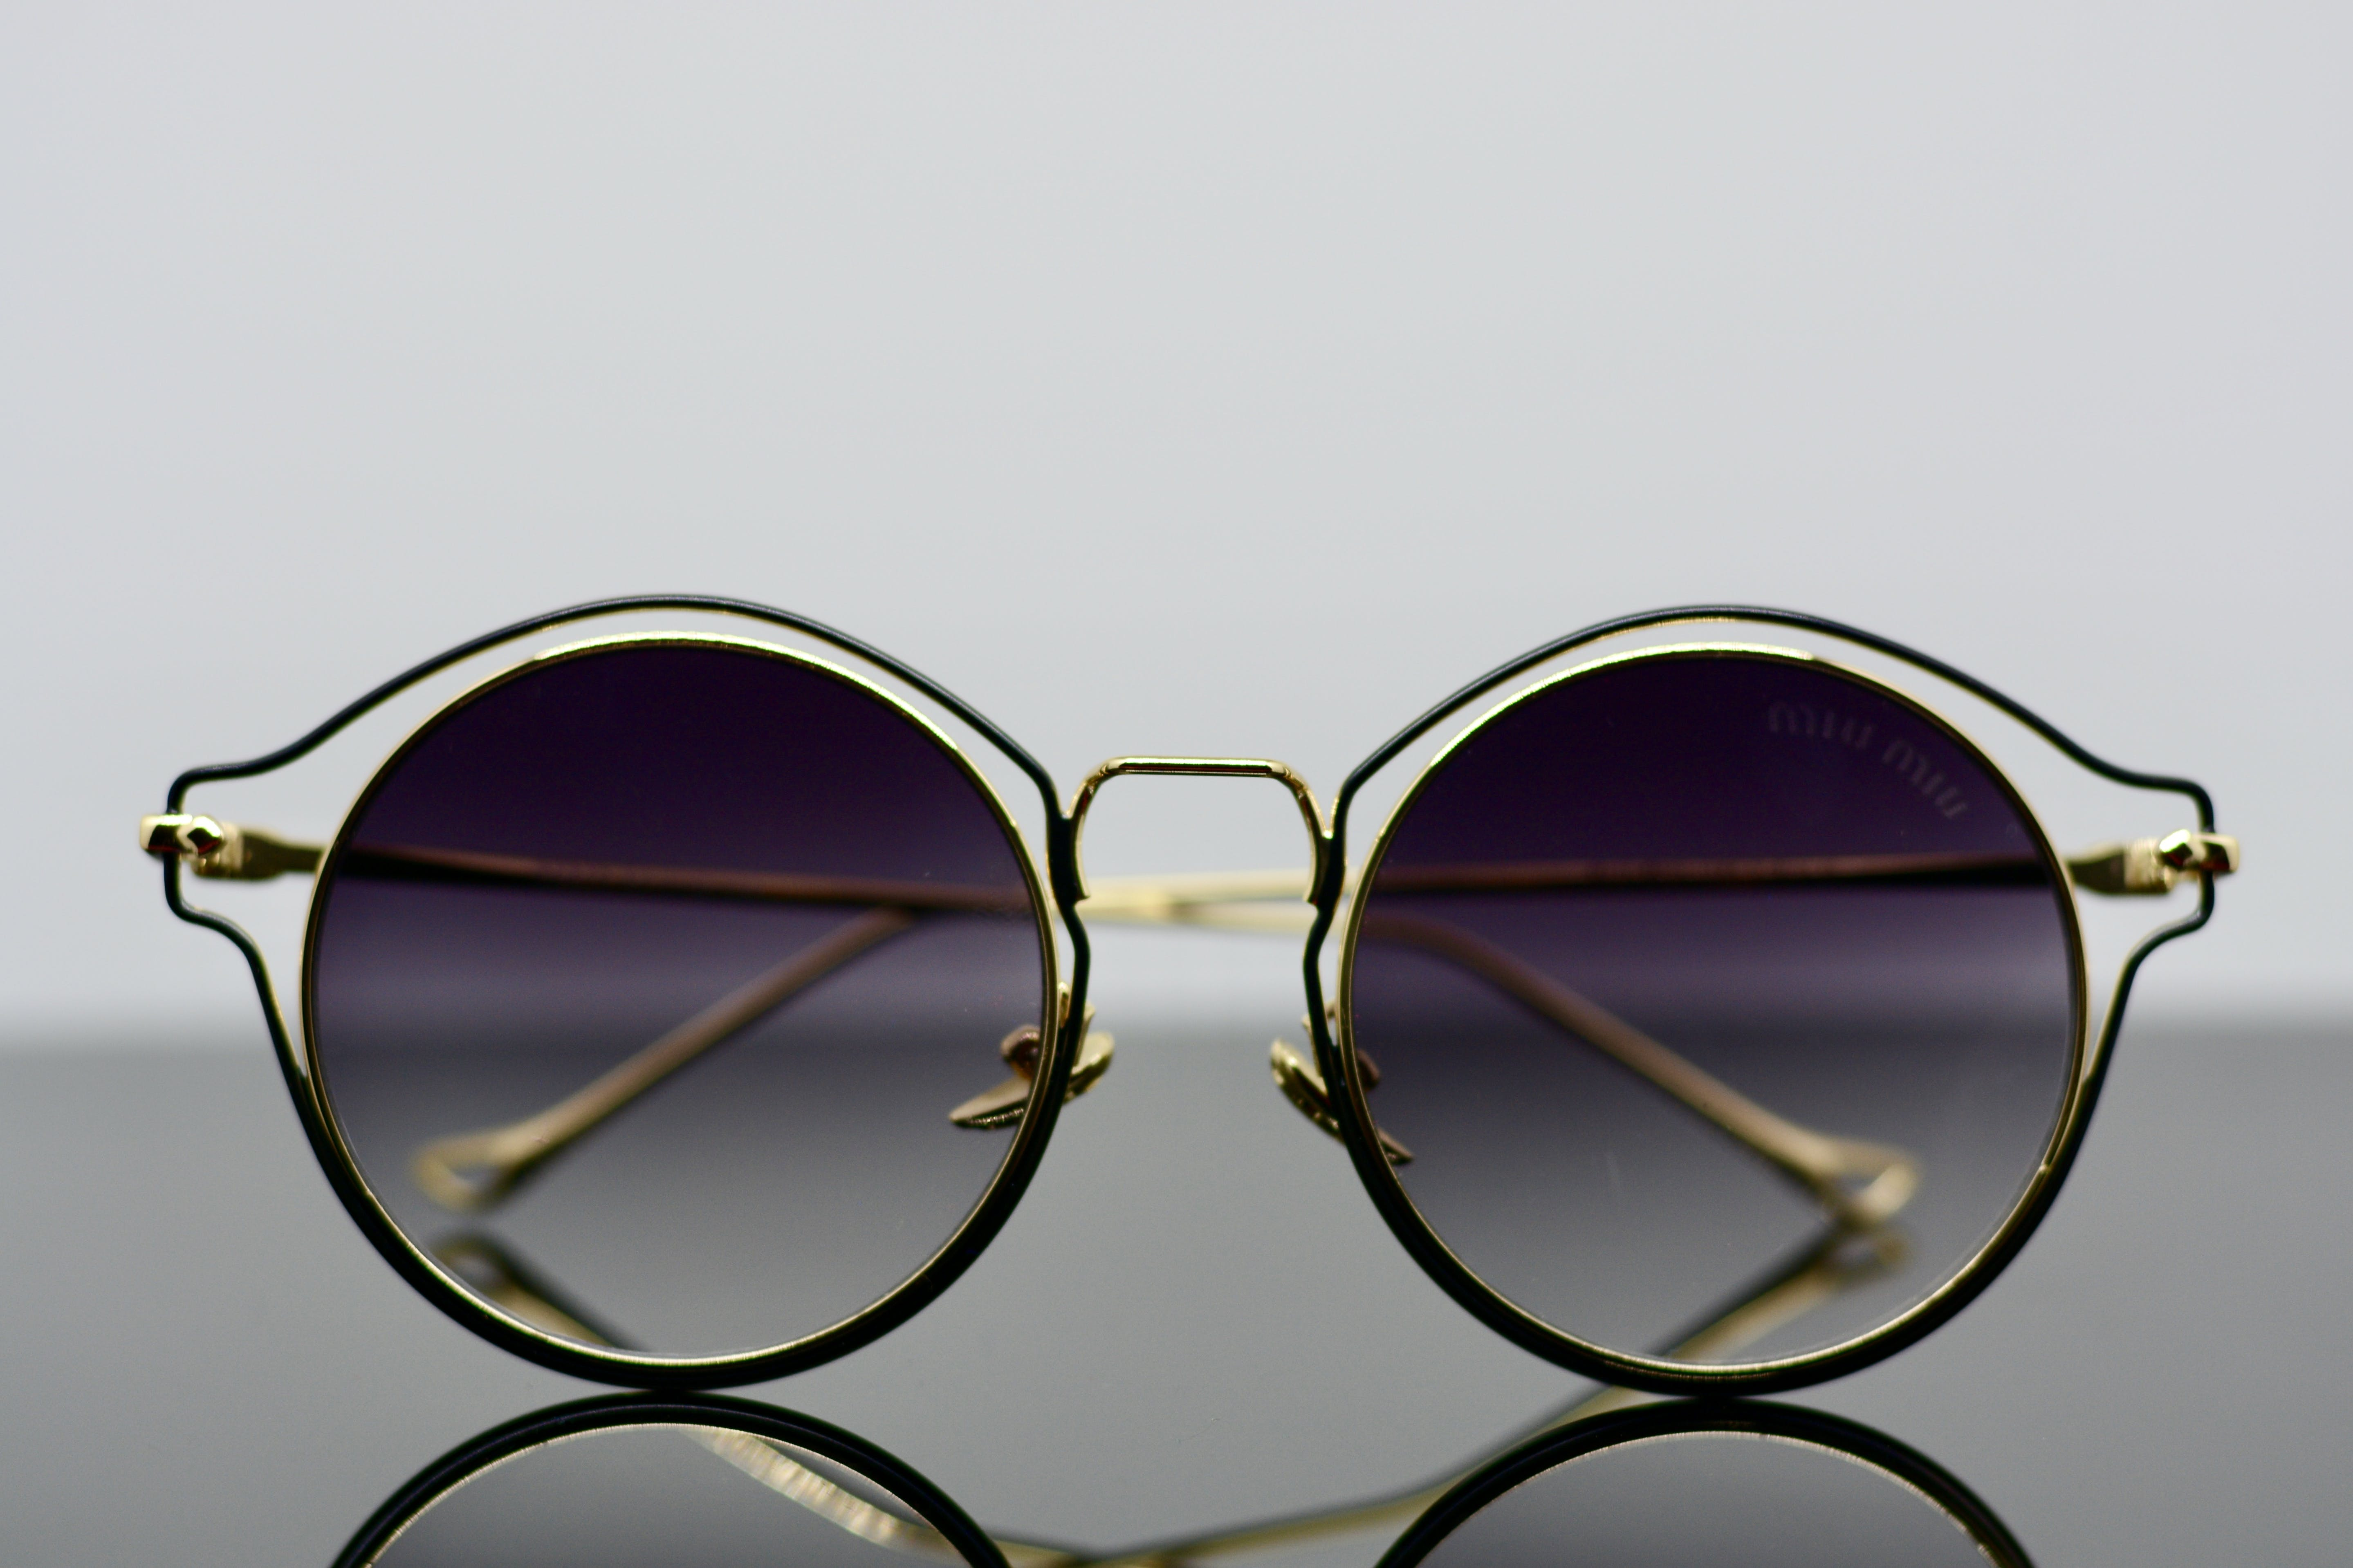 Free stock photo of glass, product shot, sunglass, table top